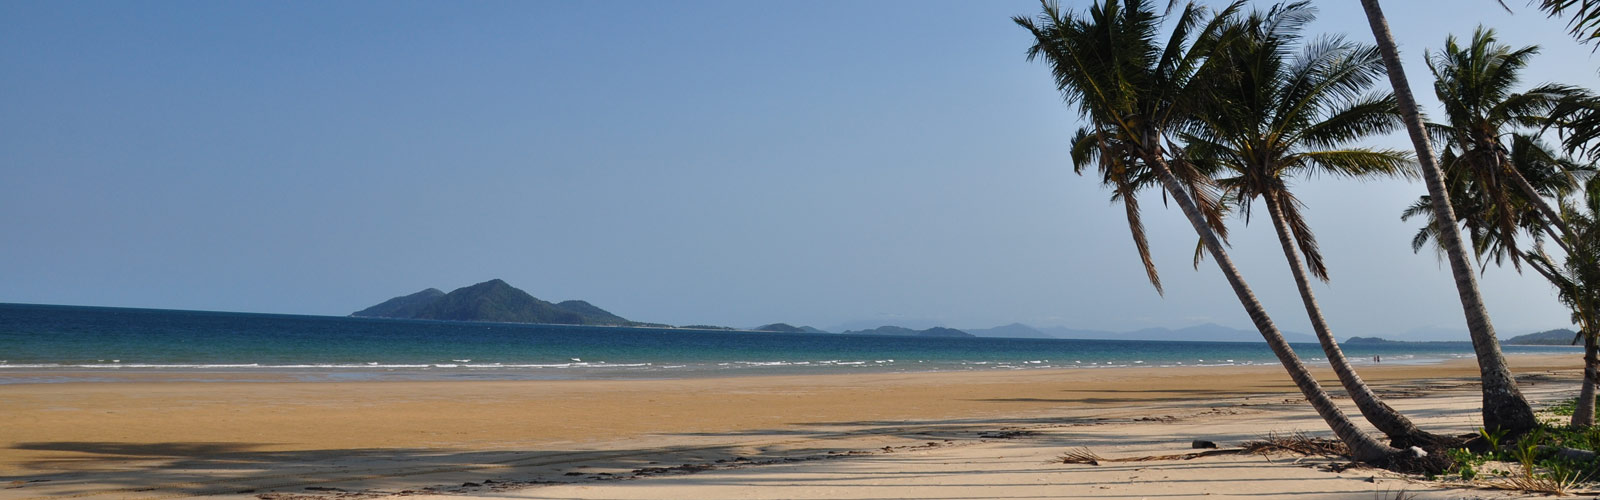 Mission Beach, Queensland